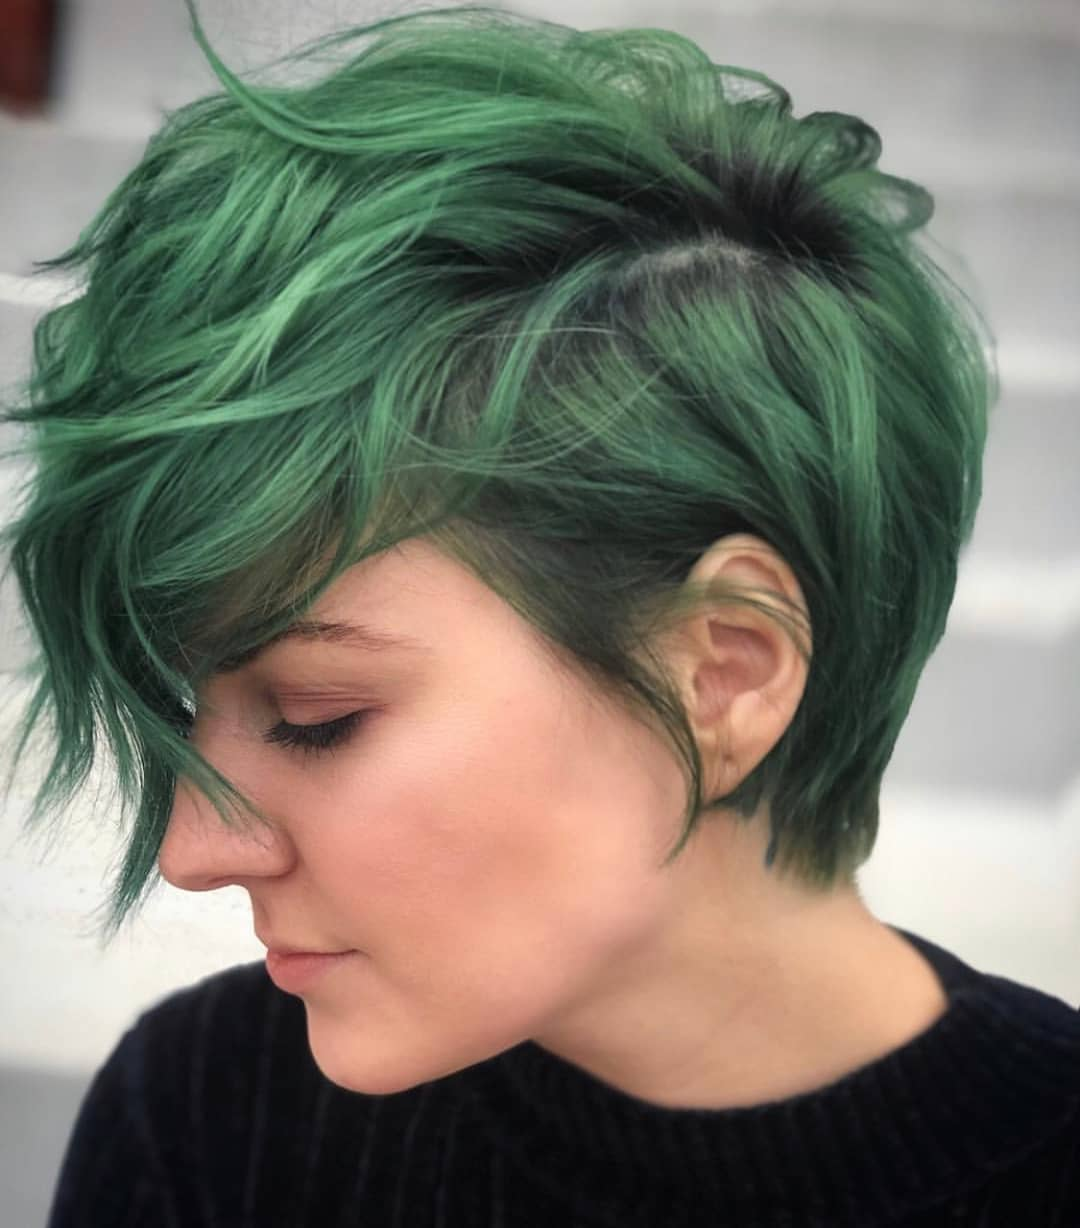 10 Casual Short Hairstyles for Women   Modern Short ...